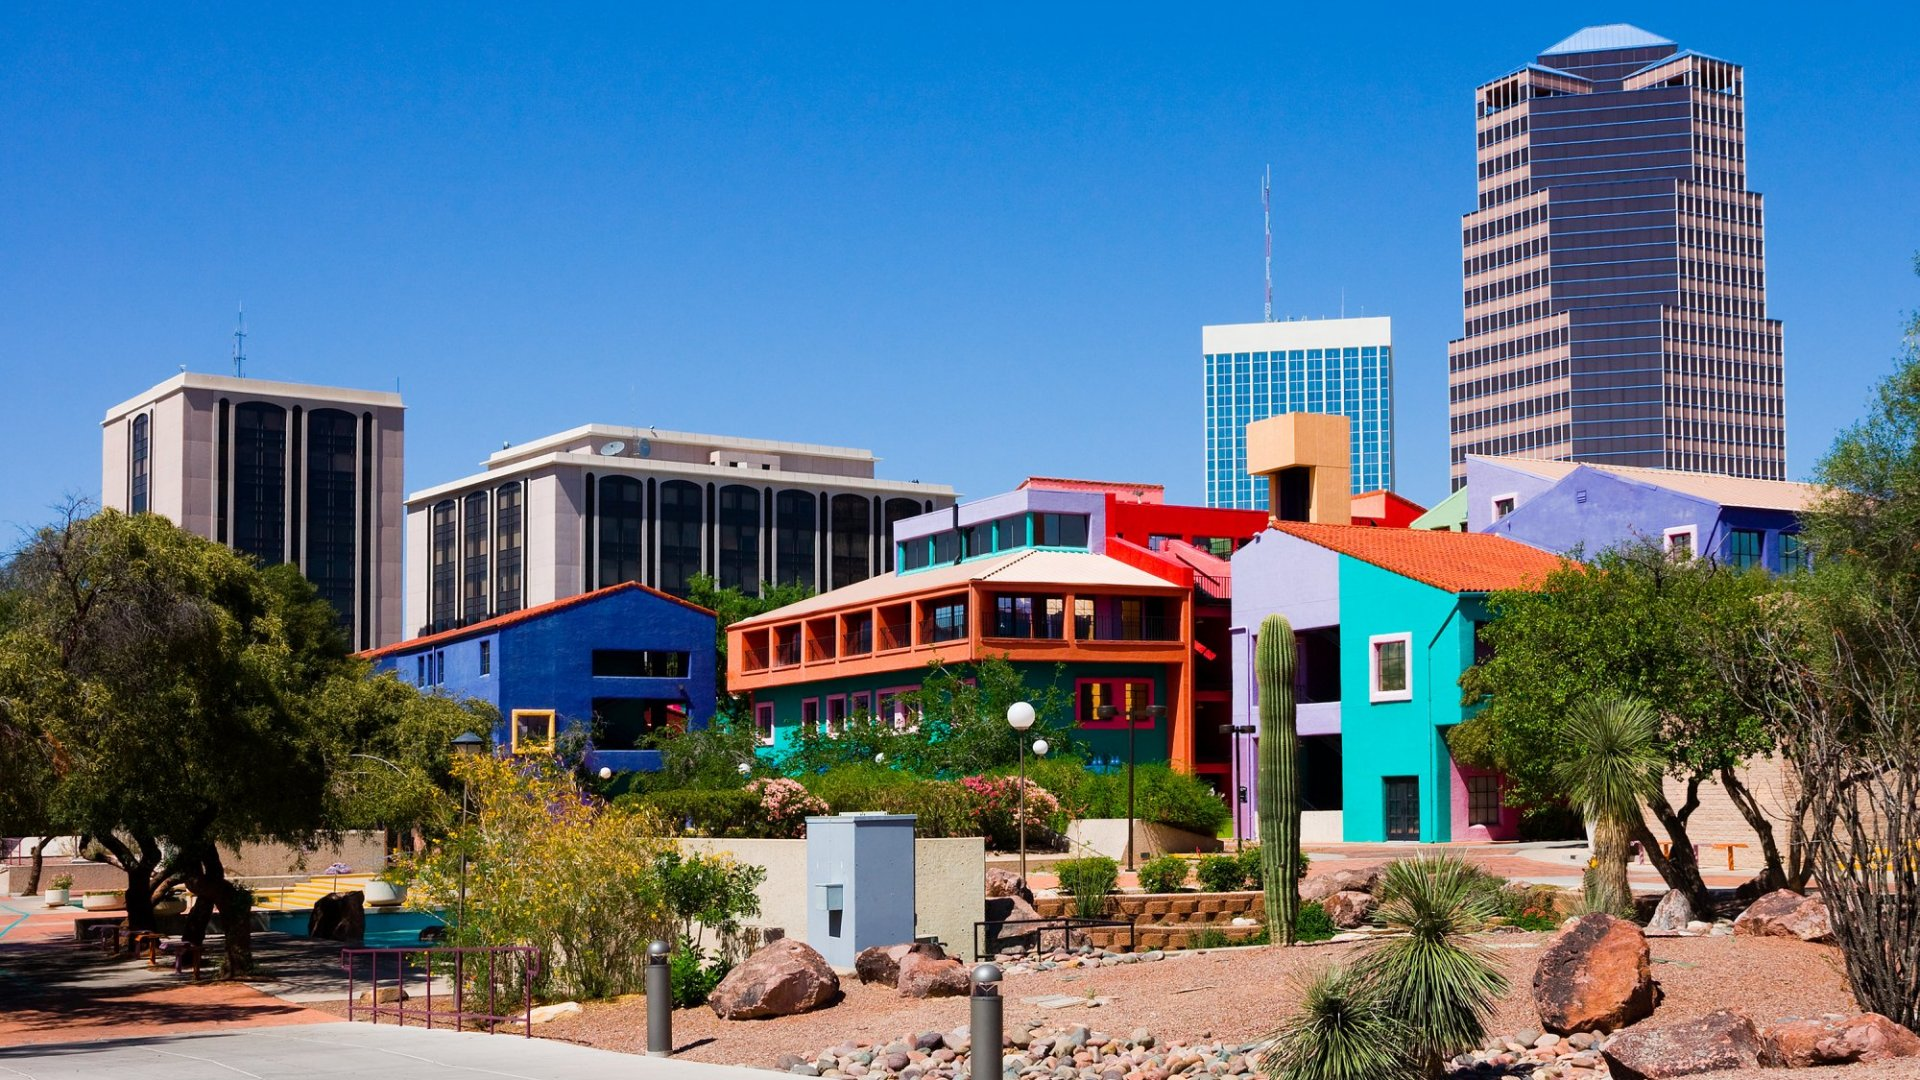 You can live comfortably in Tucson for less than $40k a year